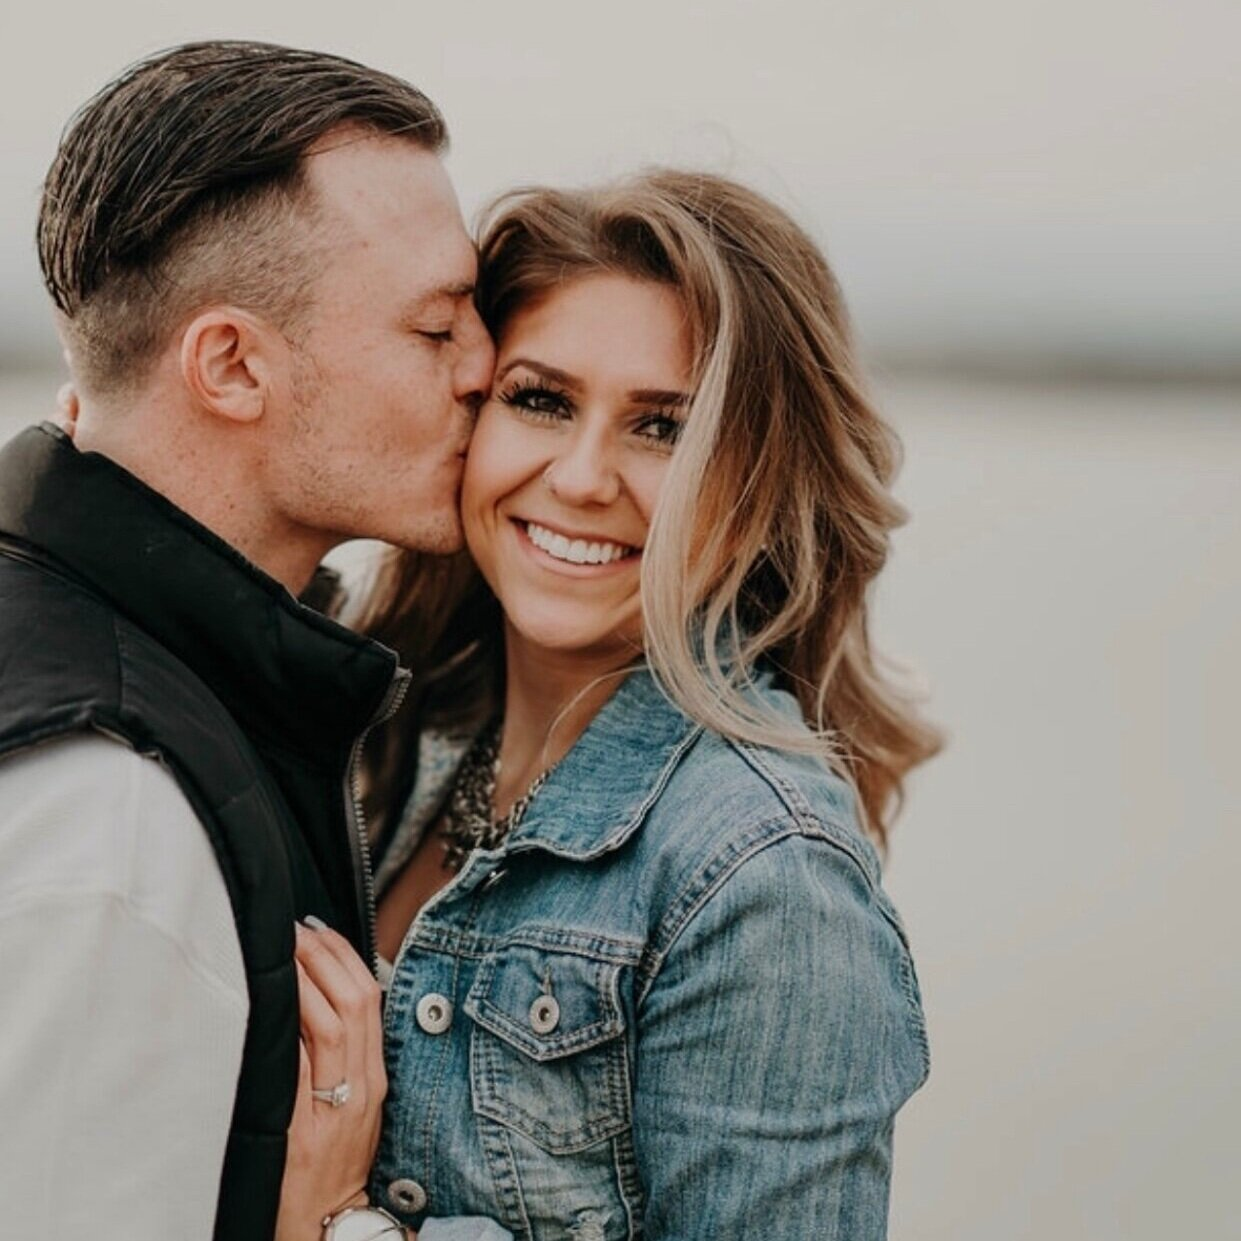 Taylor Flanagan - RANK: EXECUTIVEMy name is Taylor Flanagan, I am married to my very best friend, Tommy and we are building our family in Arvada, Colorado. We love all things sports and fitness, and healthy, pure living is at the top of our list. I started running the YL business in September of 2018 and our family is far better in all aspects, because of it!